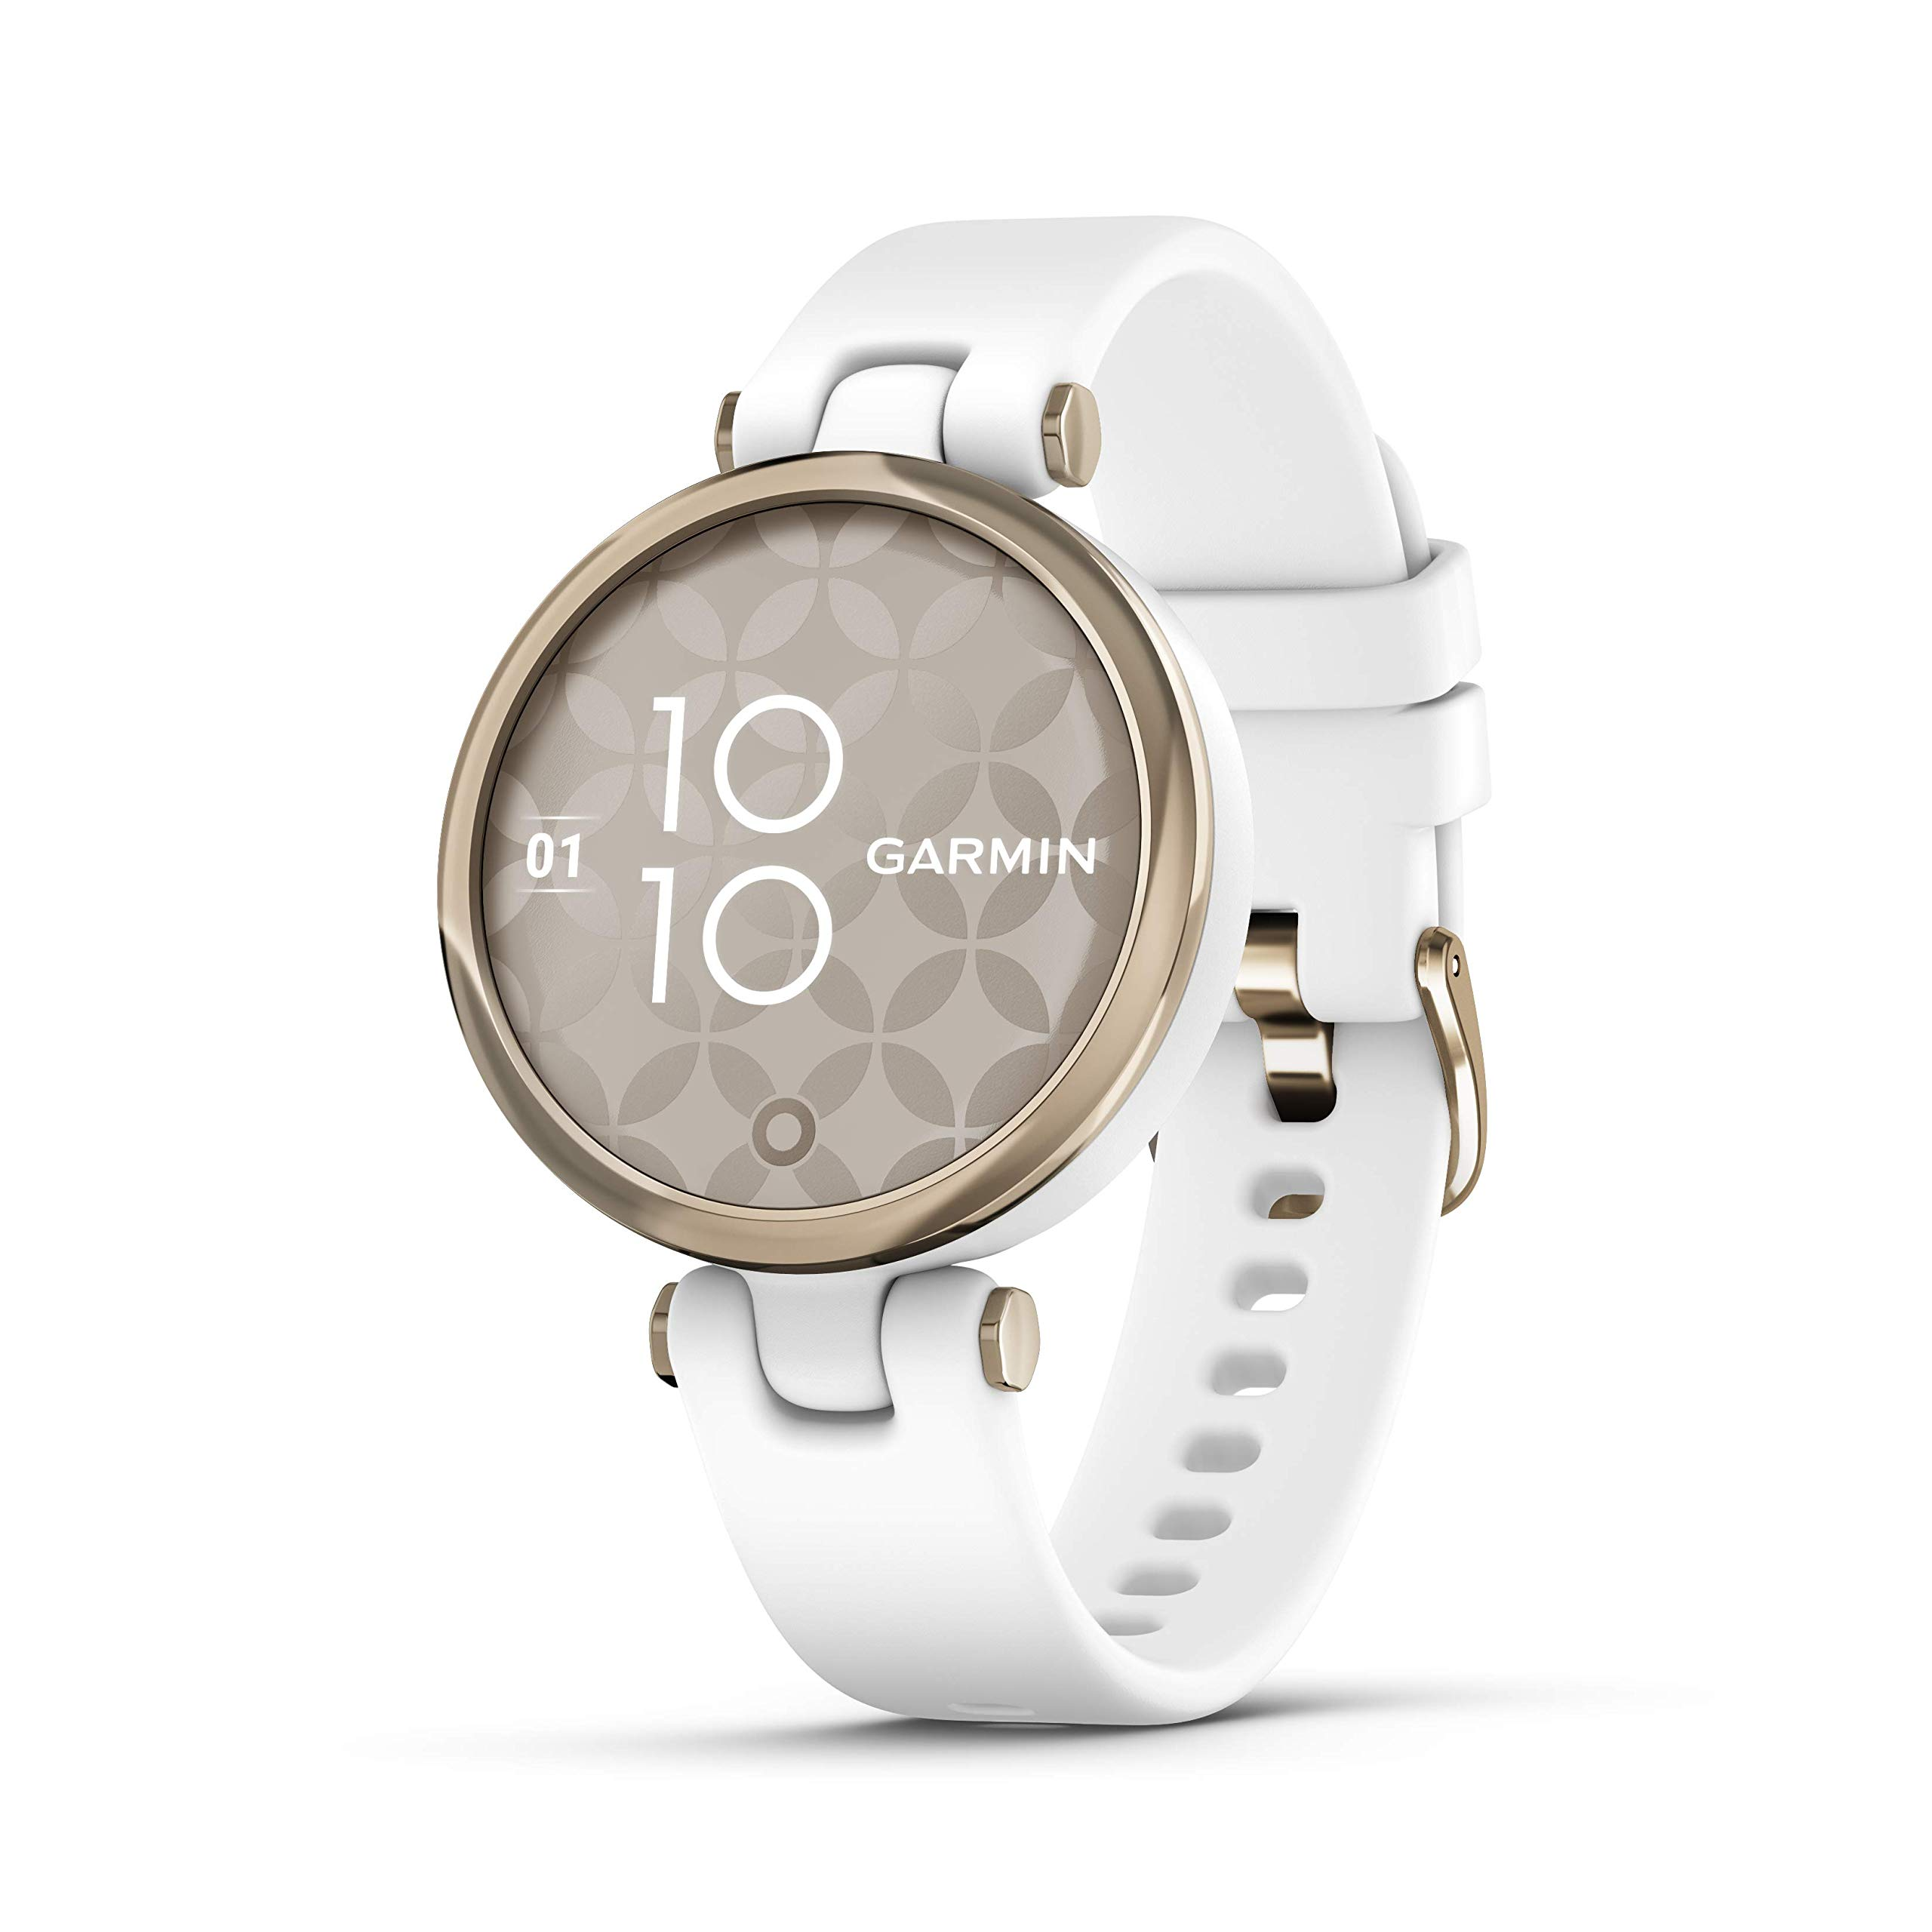 Garmin Lily Smartwatch Sport Edition - Cream Gold Bezel with White Case and Silione Band